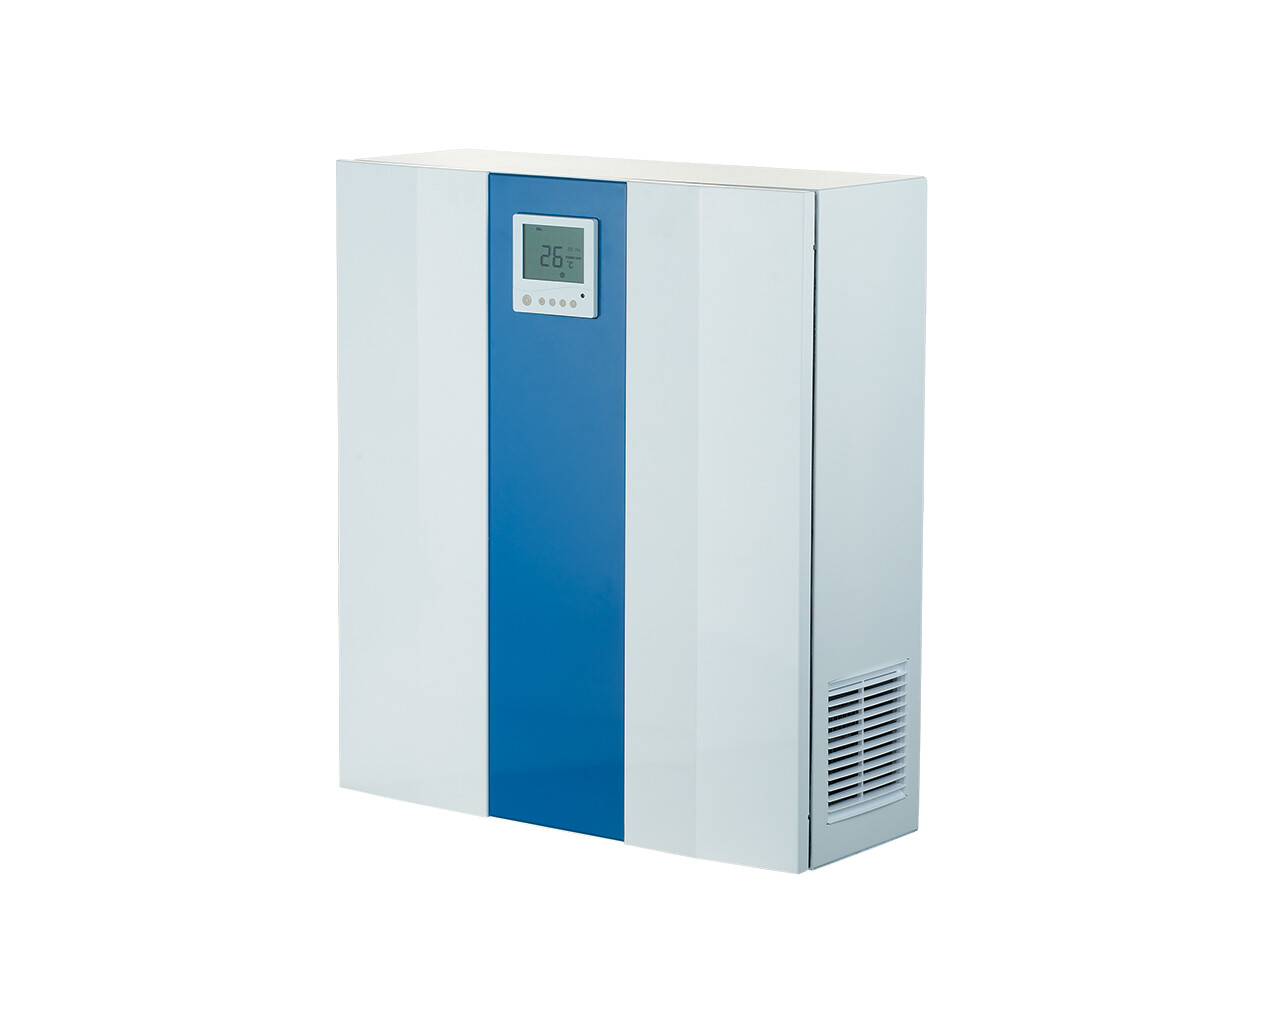 Single room air handling units with heat recovery